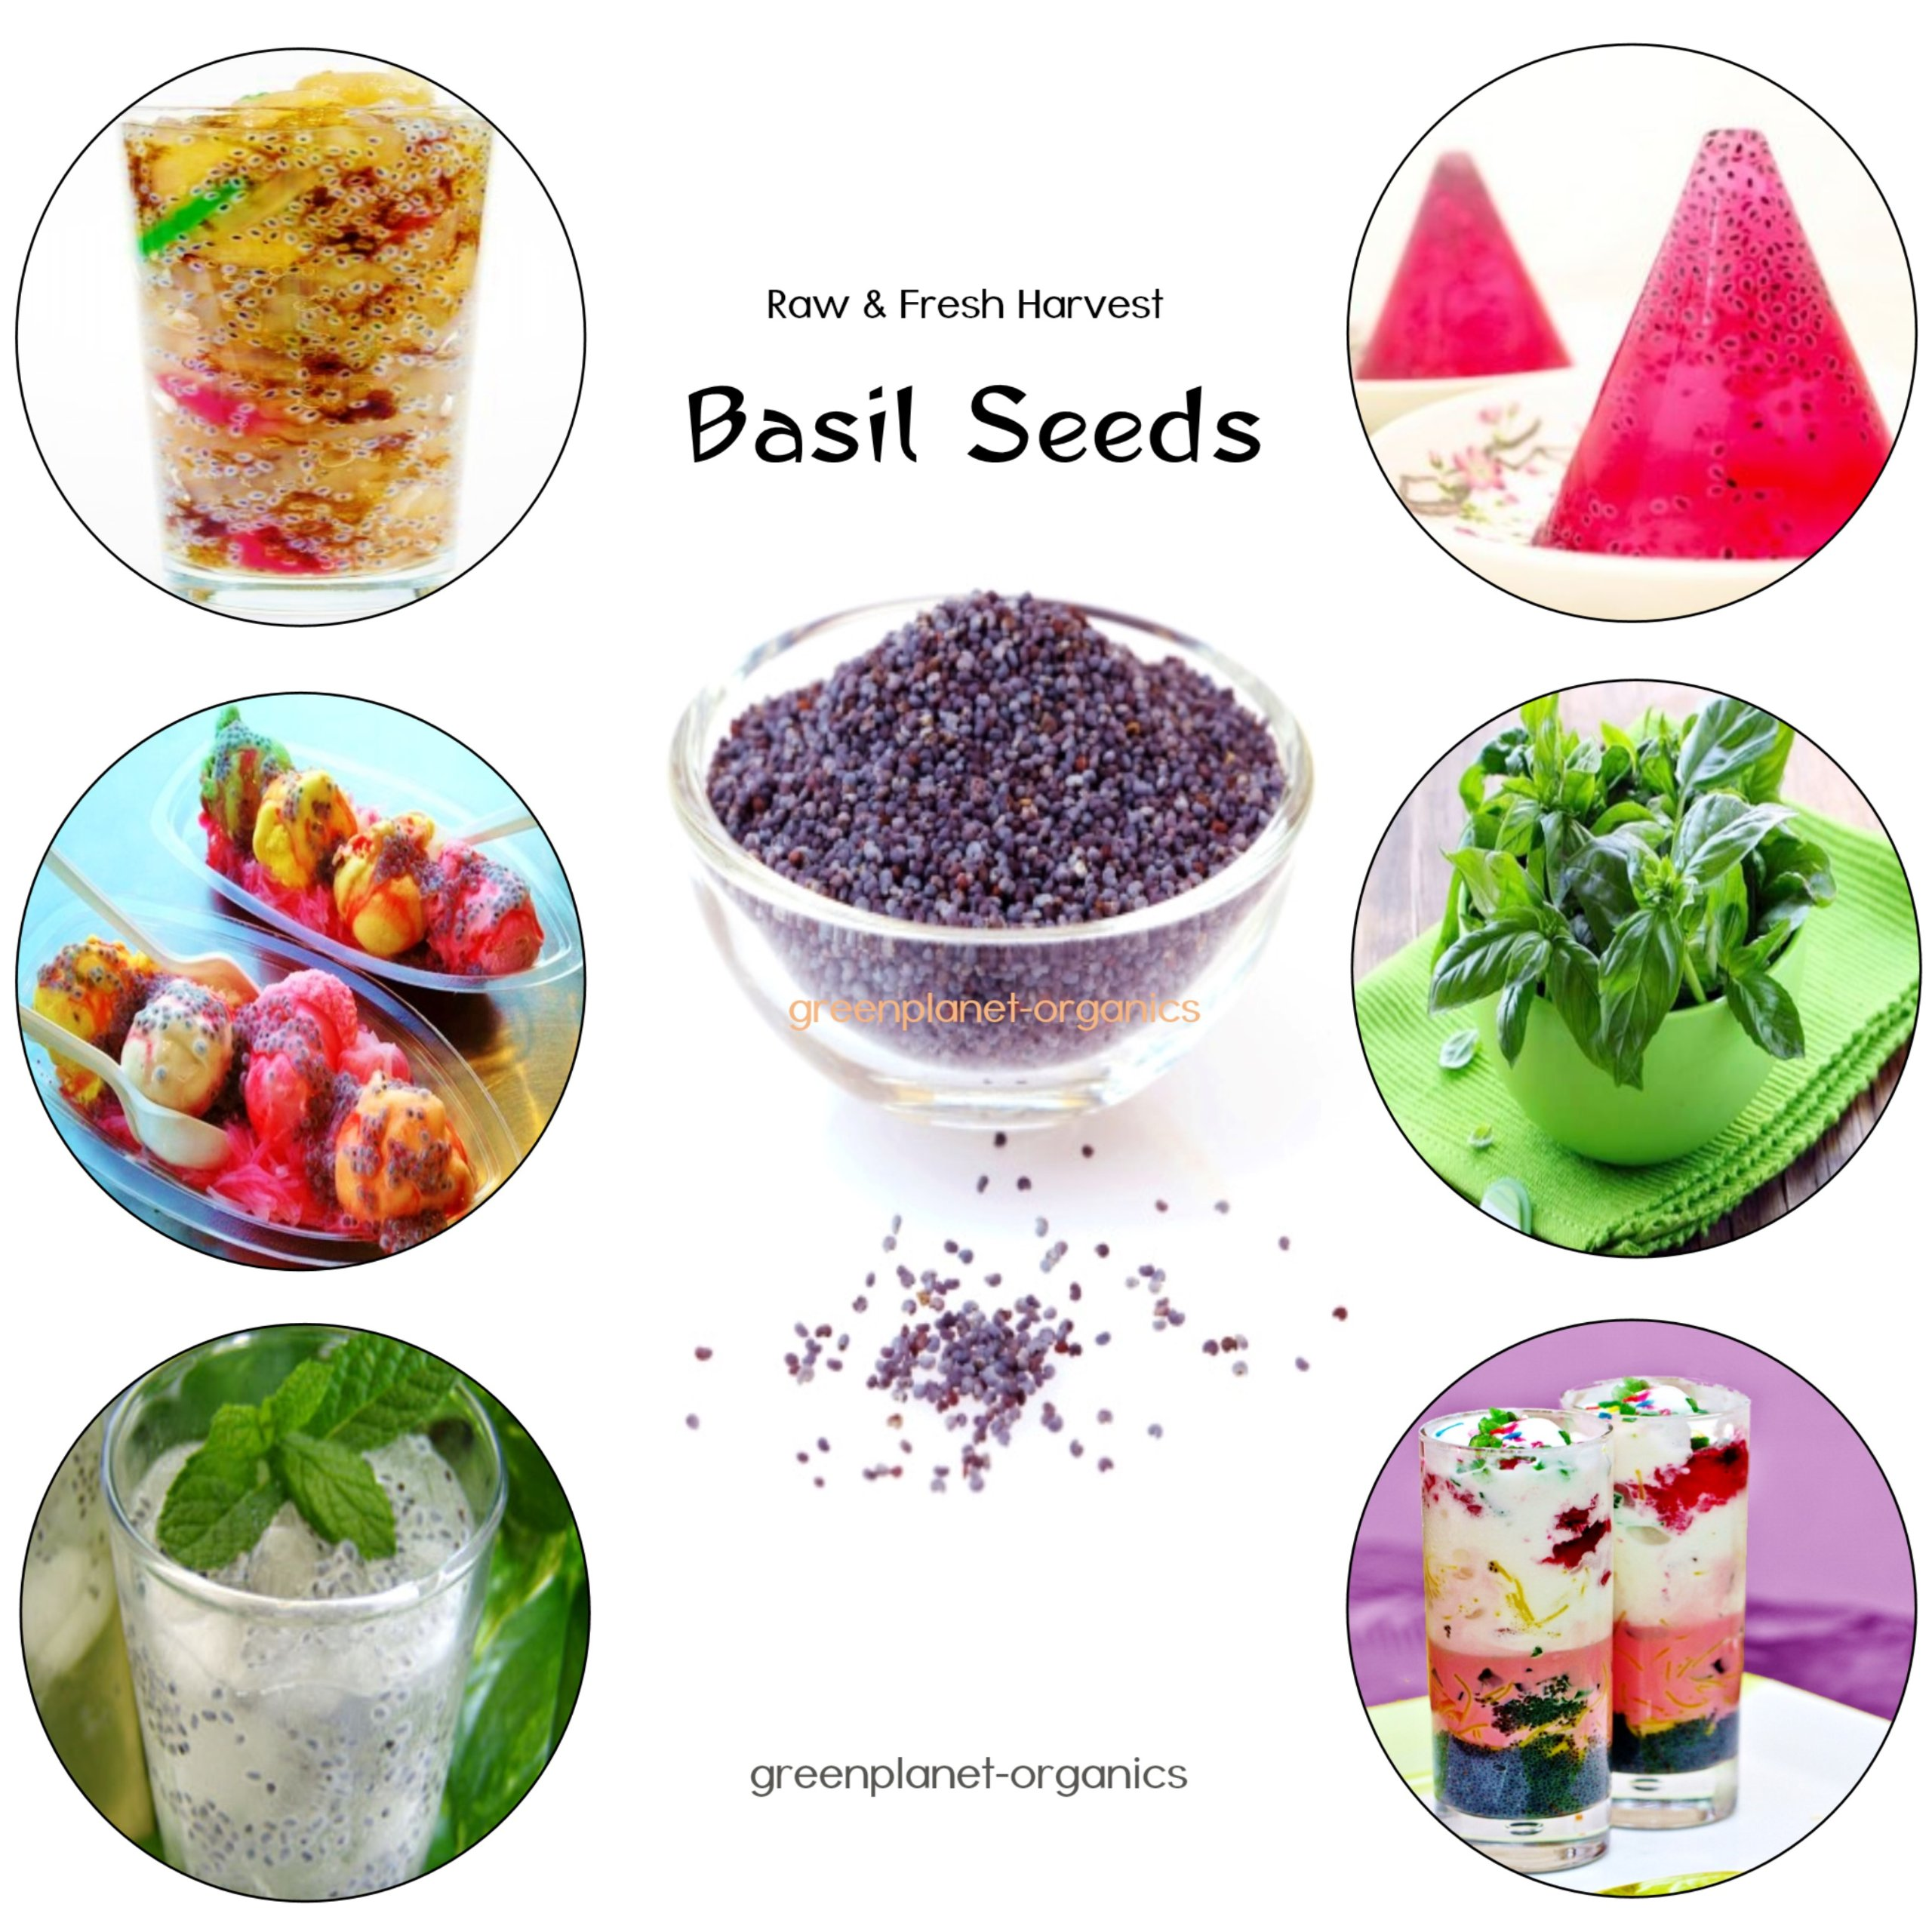 Cheap Halal Drinks Flavour Find Deals On Line Pronas Corned Beef Chili Get Quotations 1 Lb Organic Tukh Malanga Seeds Make Delicious Rooh Afza Falooda Ice